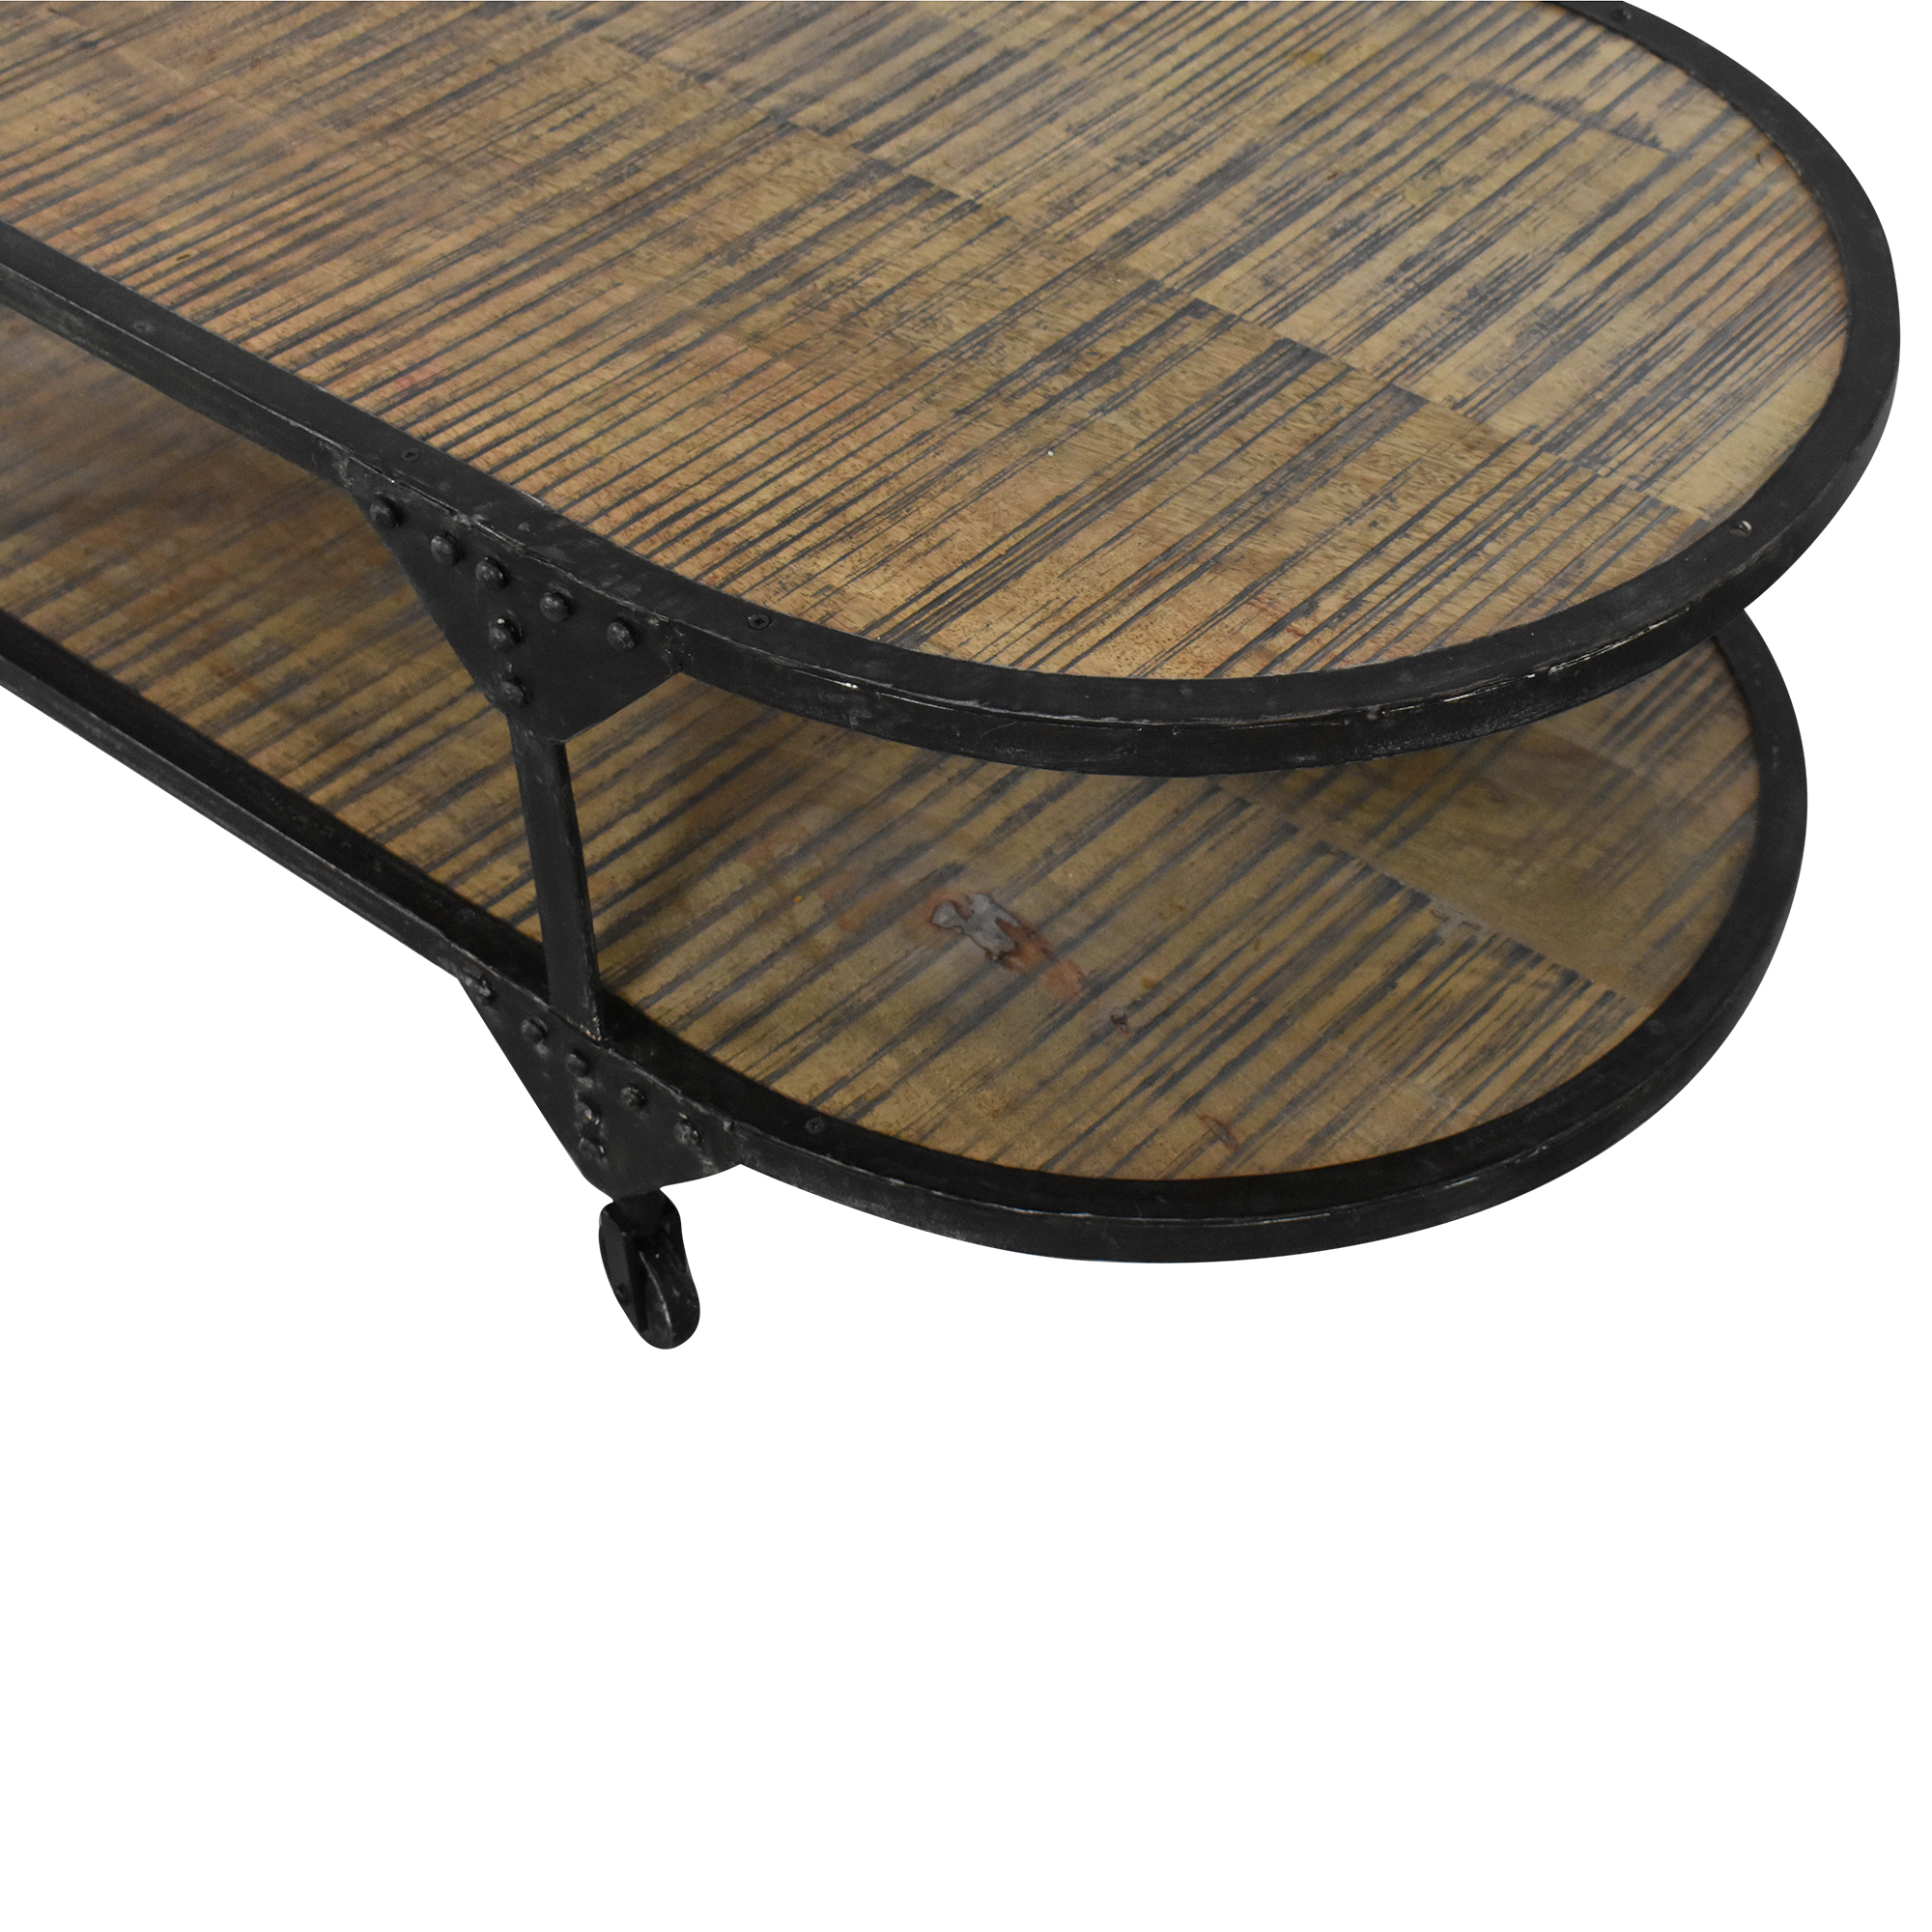 Two Tier Oval Coffee Table nyc